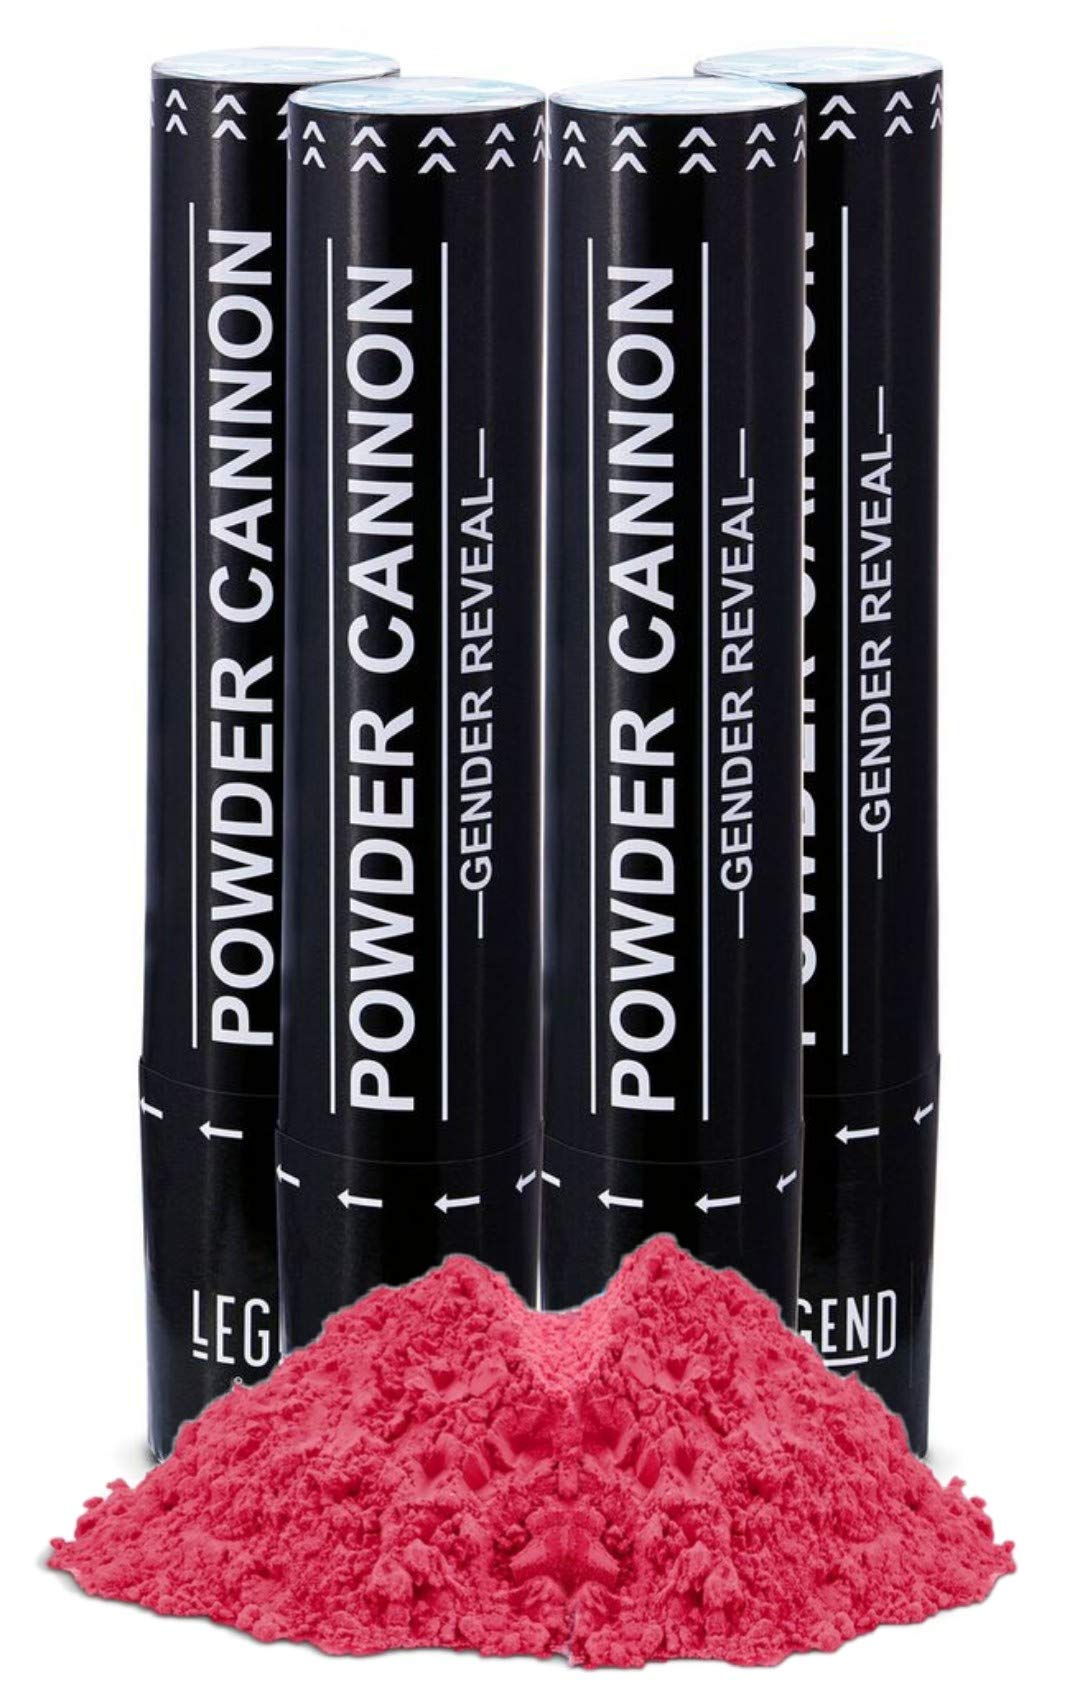 Legend & Co, Baby Gender Reveal Powder Cannons | Air Compressed Party Poppers | Bonus Feature: Small Color Check Window to View Contents | (4 Pink)